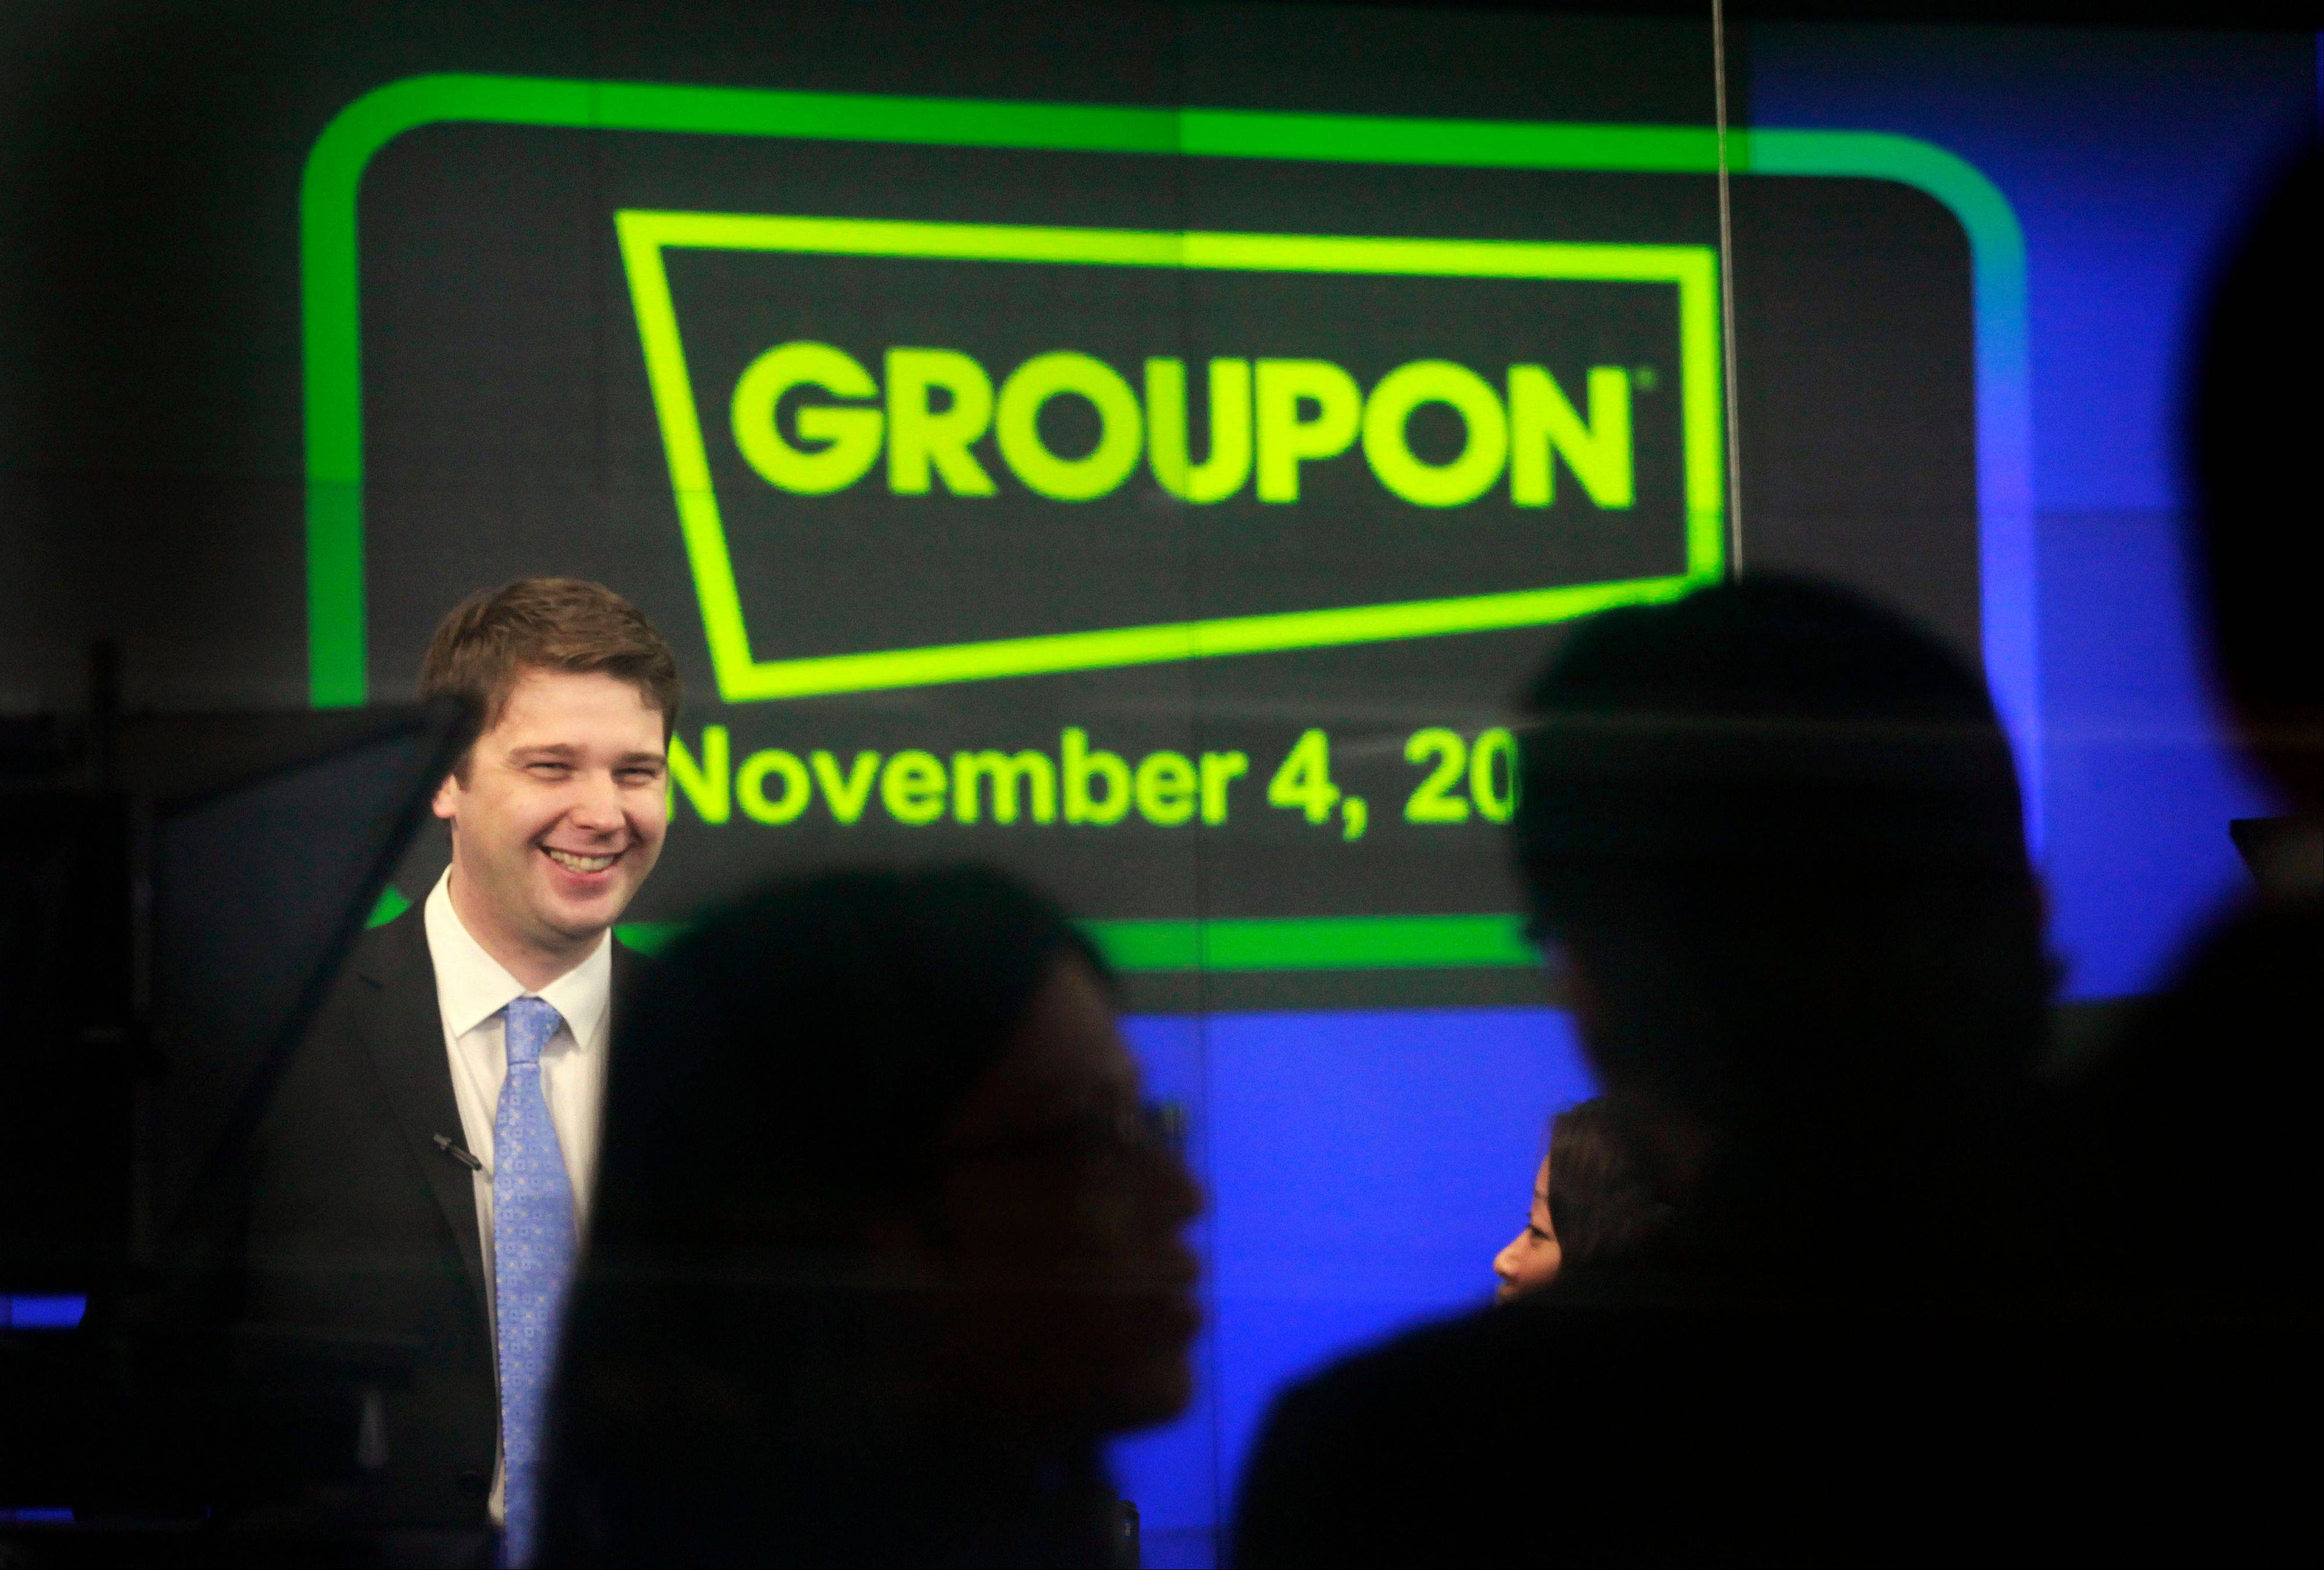 Associated Press/Nov. 4, 2011 Andrew Mason, founder and CEO of Groupon, attends his company's IPO at Nasdaq, in New York. Former Groupon CEO Mason announced several new ventures Friday, including indulging his inner rock star with an album of �motivational business music.